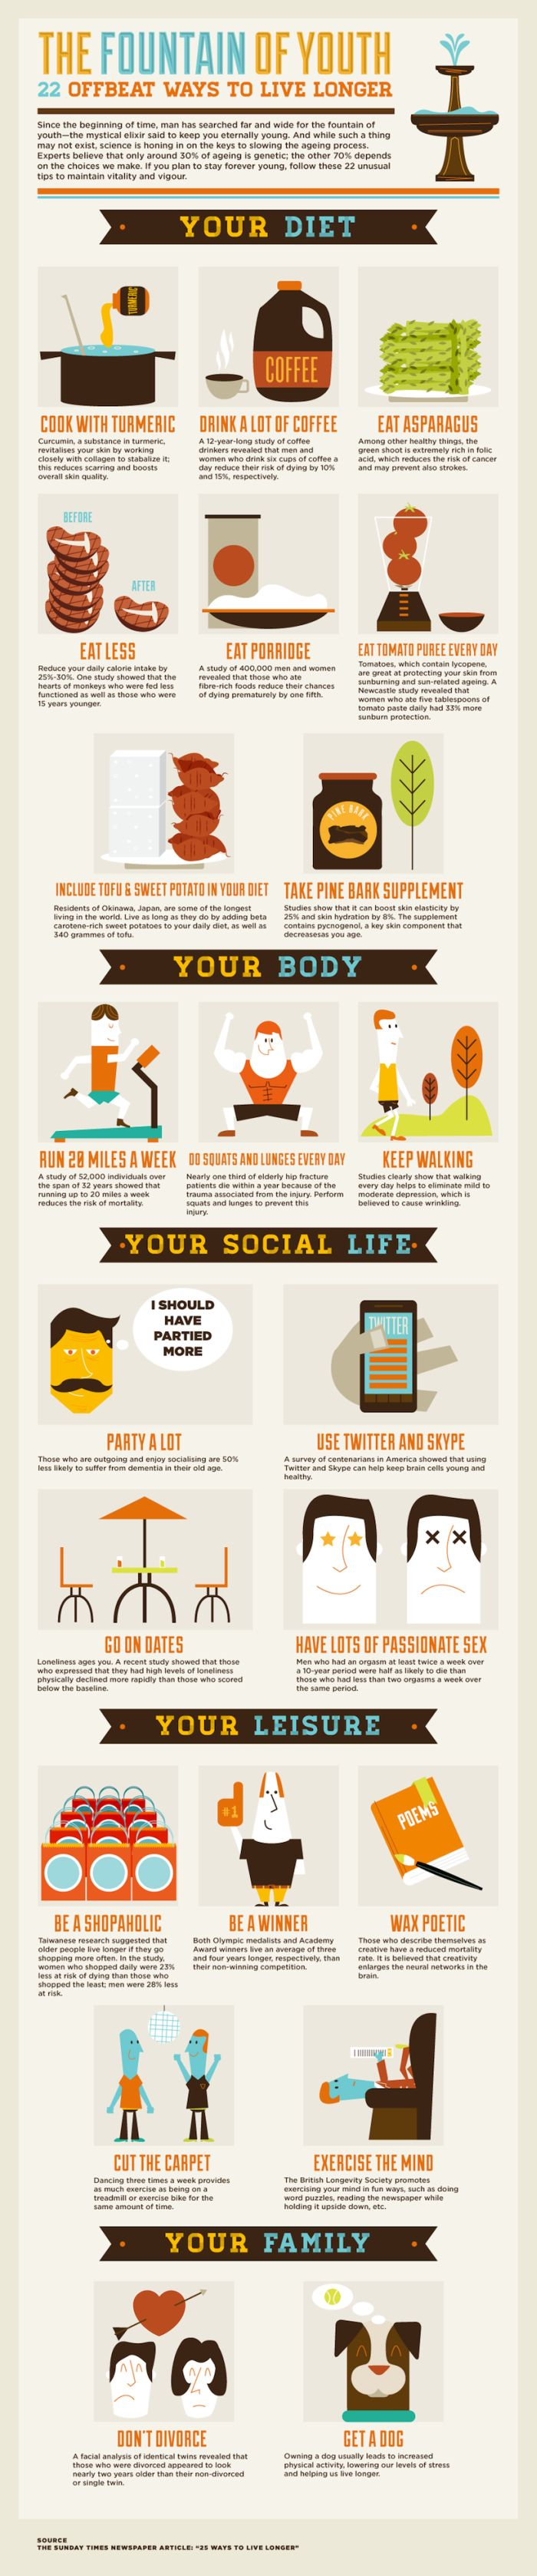 22 Things You Can Do To Live Longer (infographic)